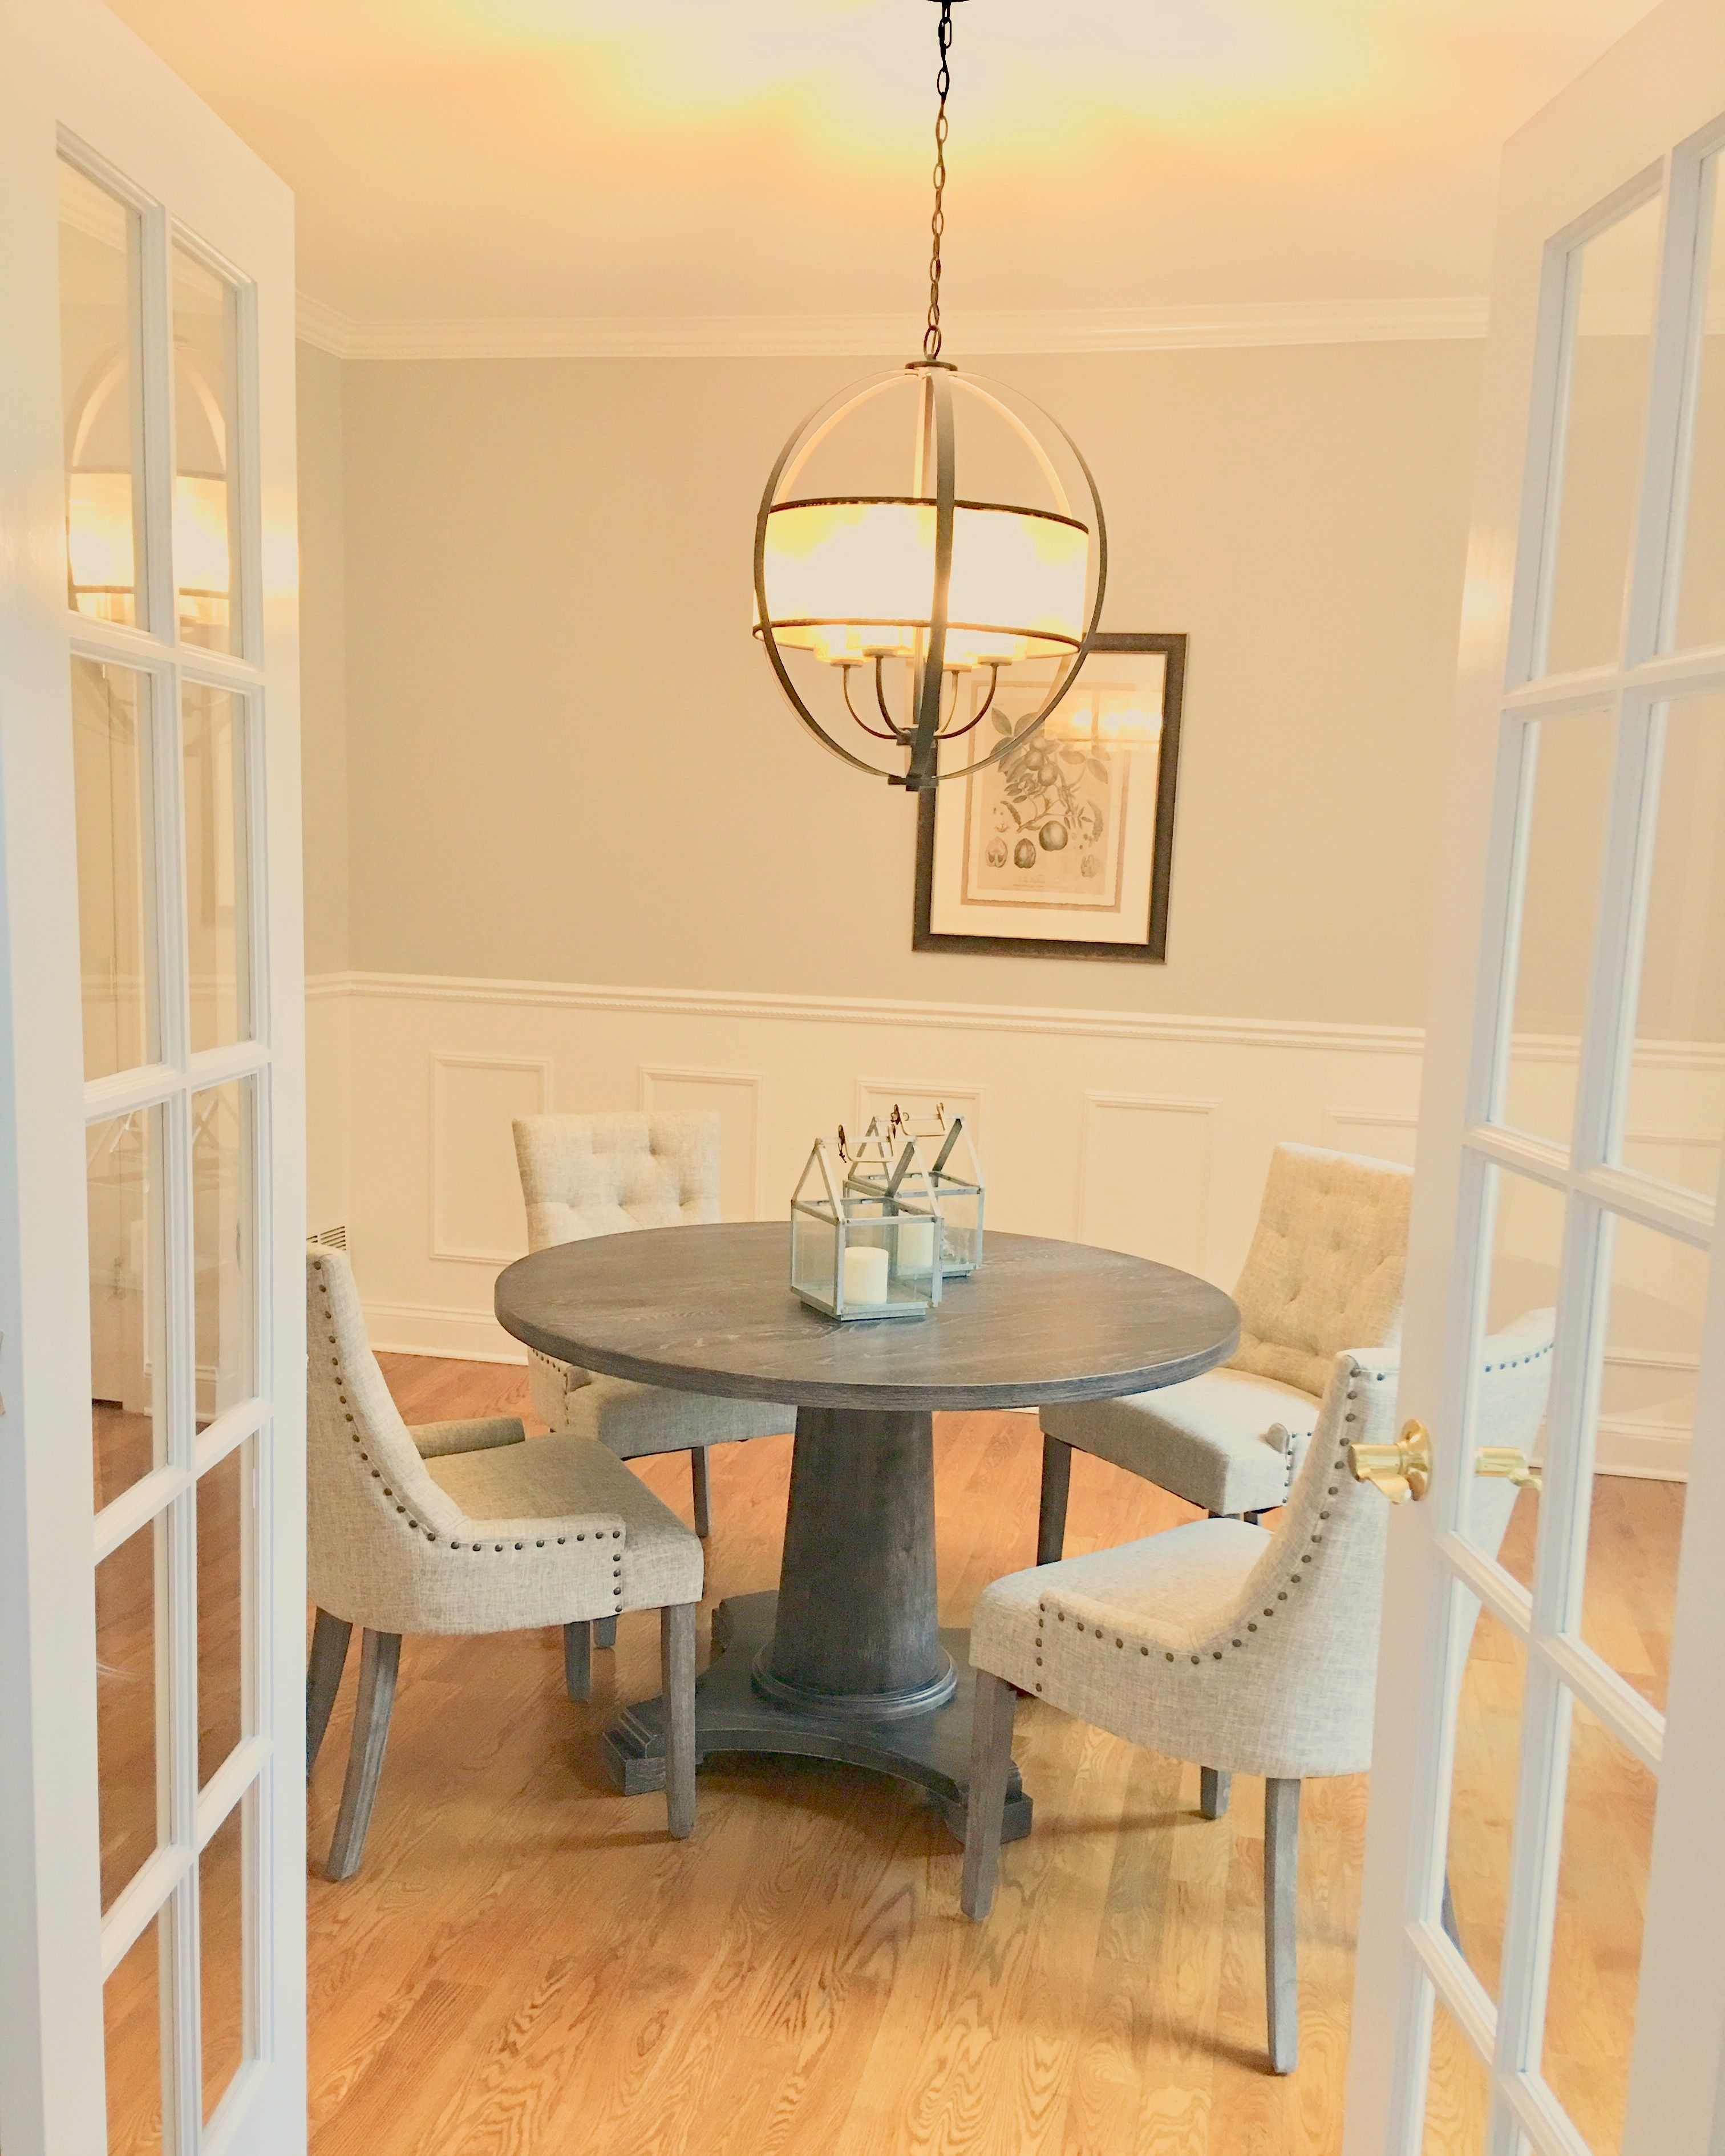 Home Staging Dining Room Table: Pin By Home Staging FortuneStagers On Fortune Stagers